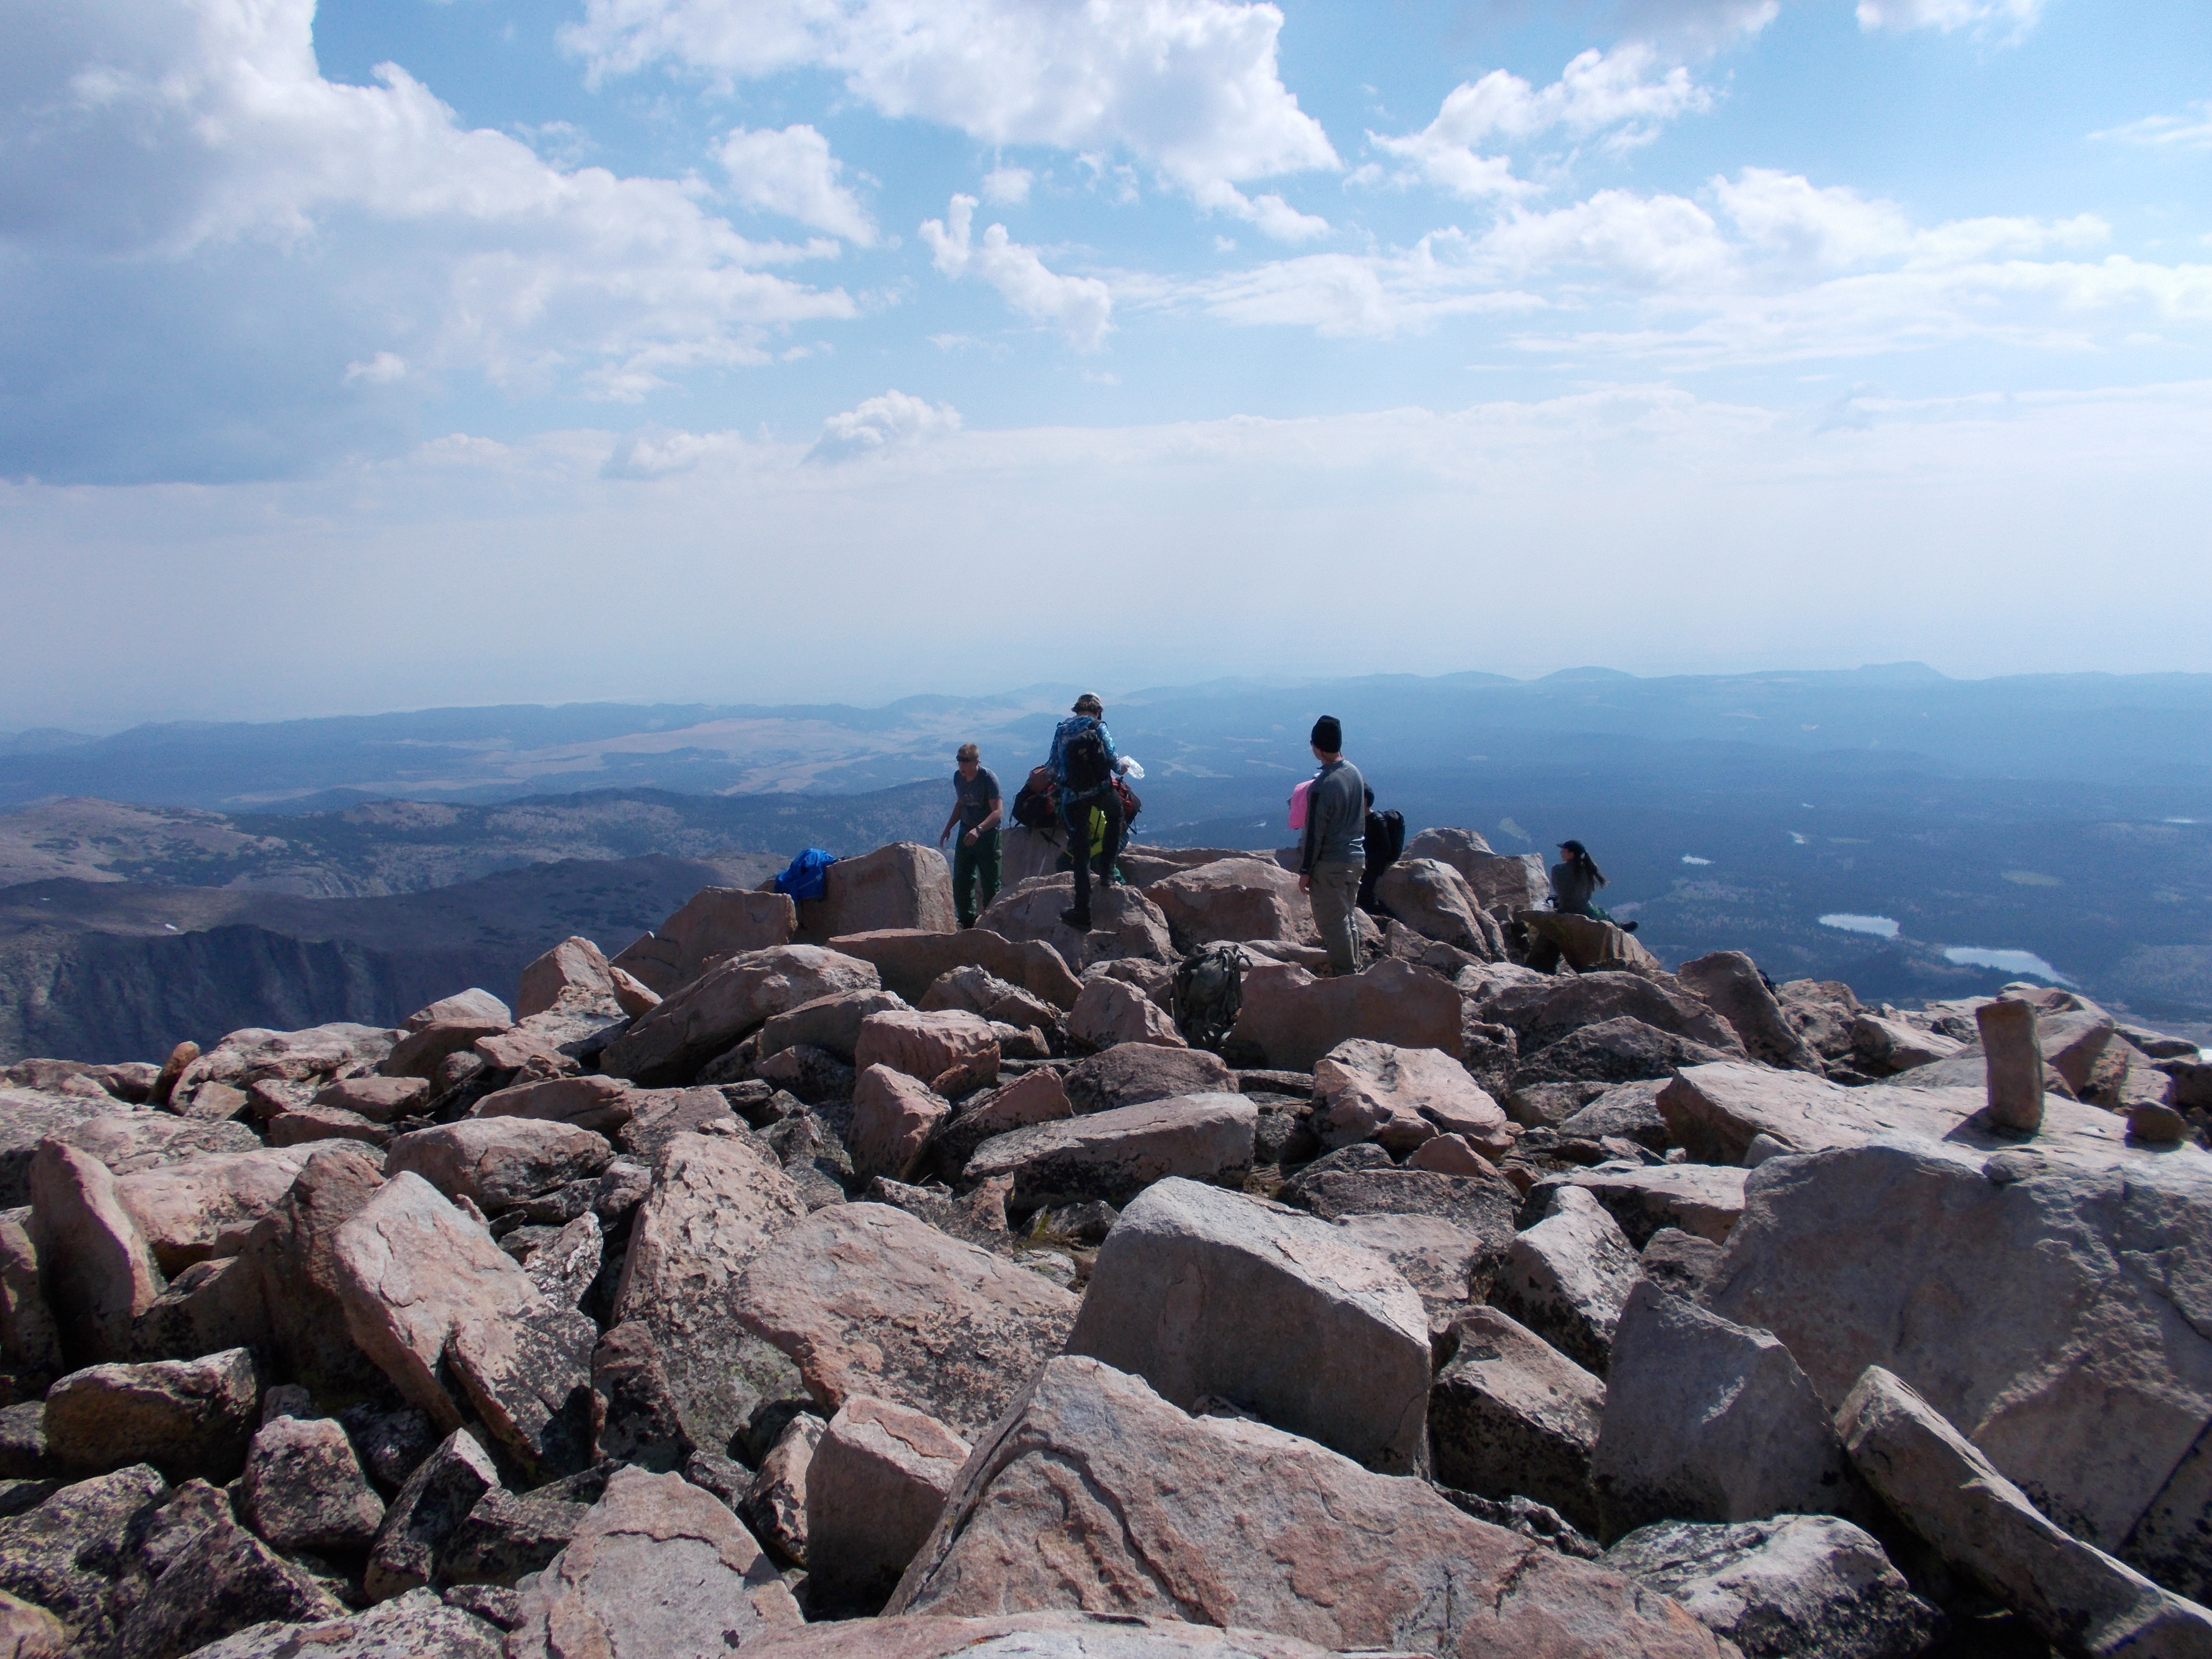 A group of four backpackers cross a boulder field with a large mountain range in front of them.